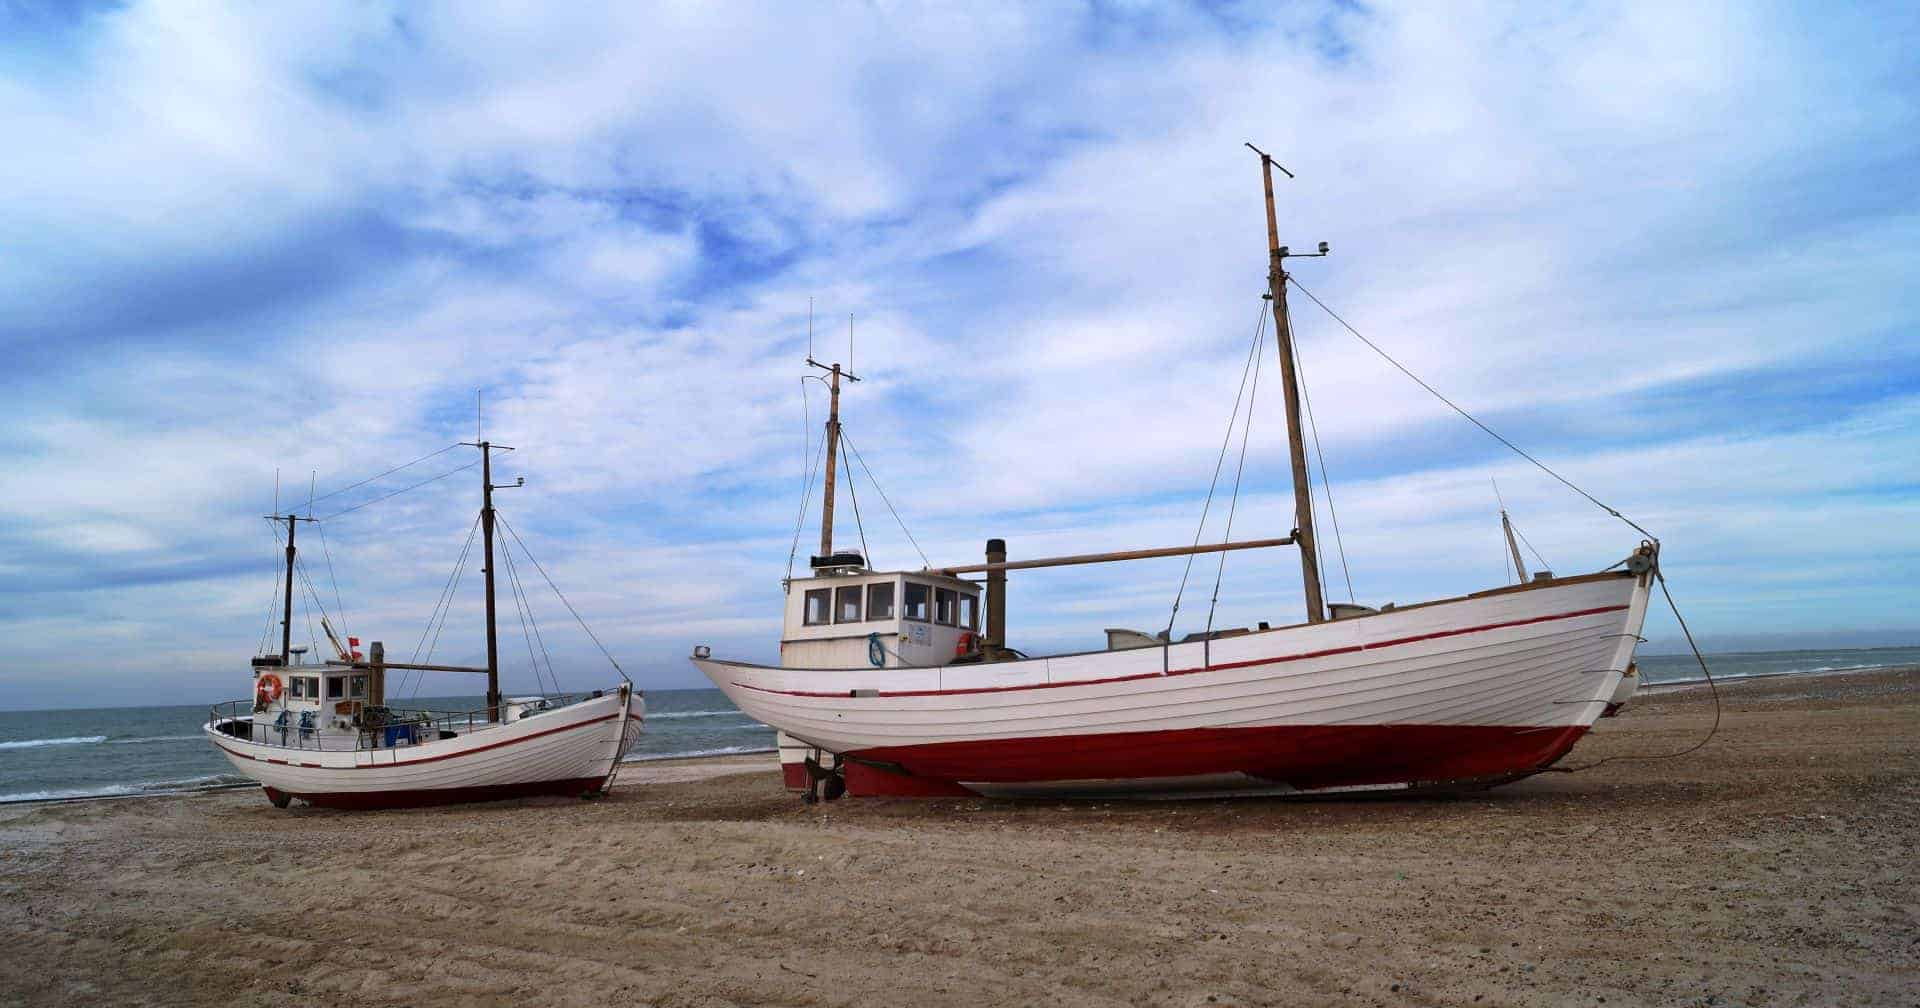 Fishing boats in Slettestrand